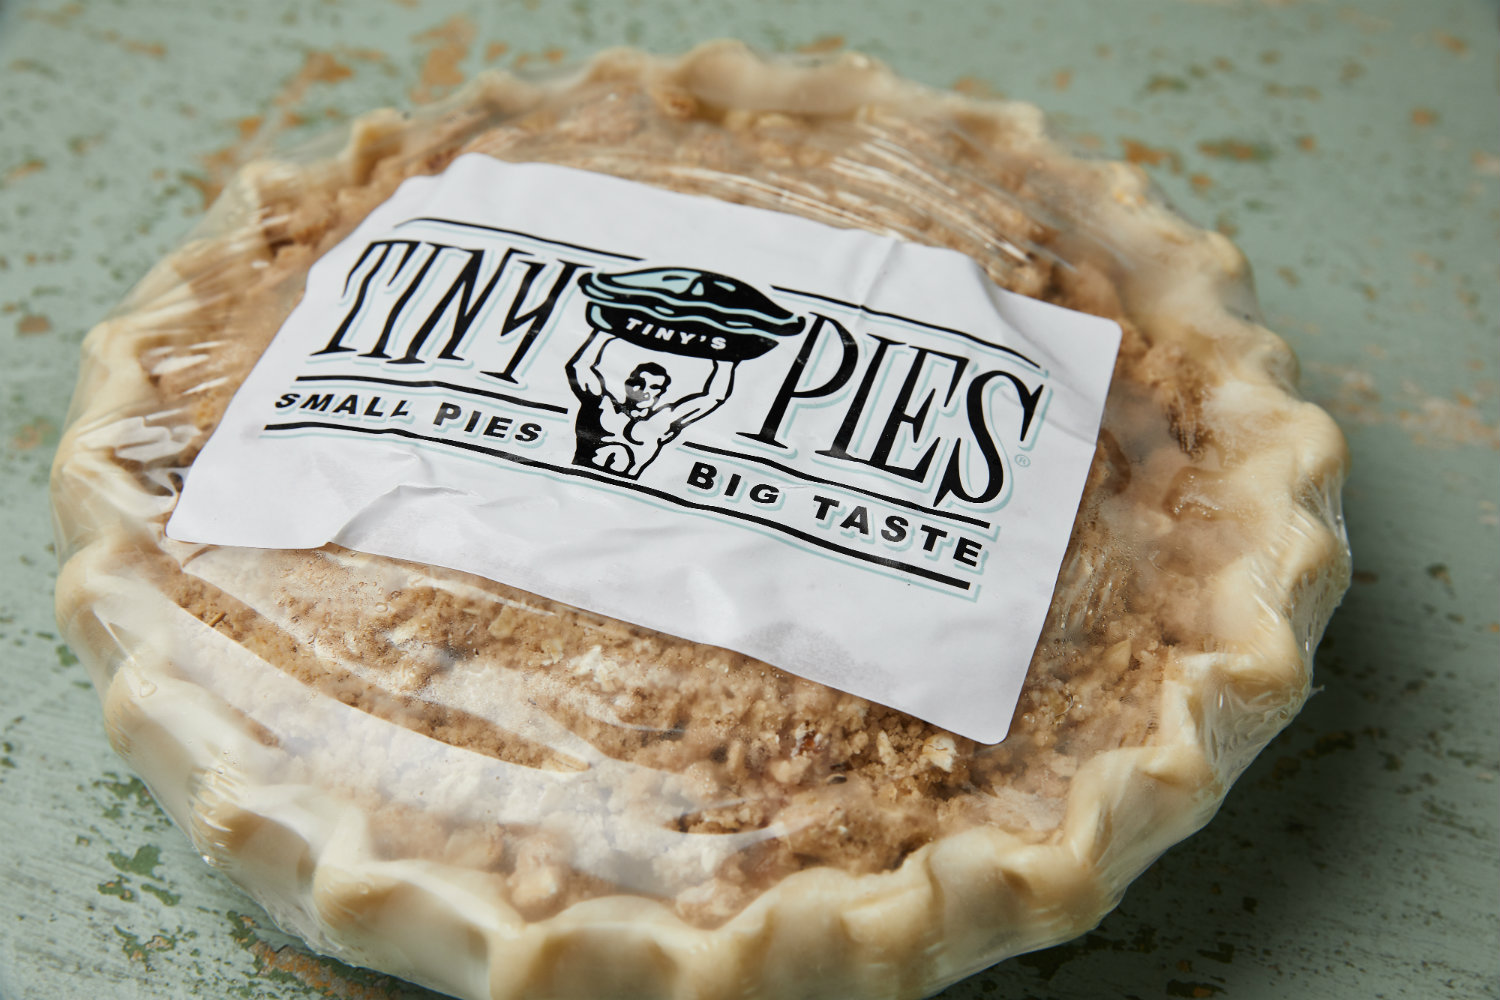 Enjoy the smells of a freshly baked pie in the comfort of your own home. You can even take the credit. We don't mind at all.